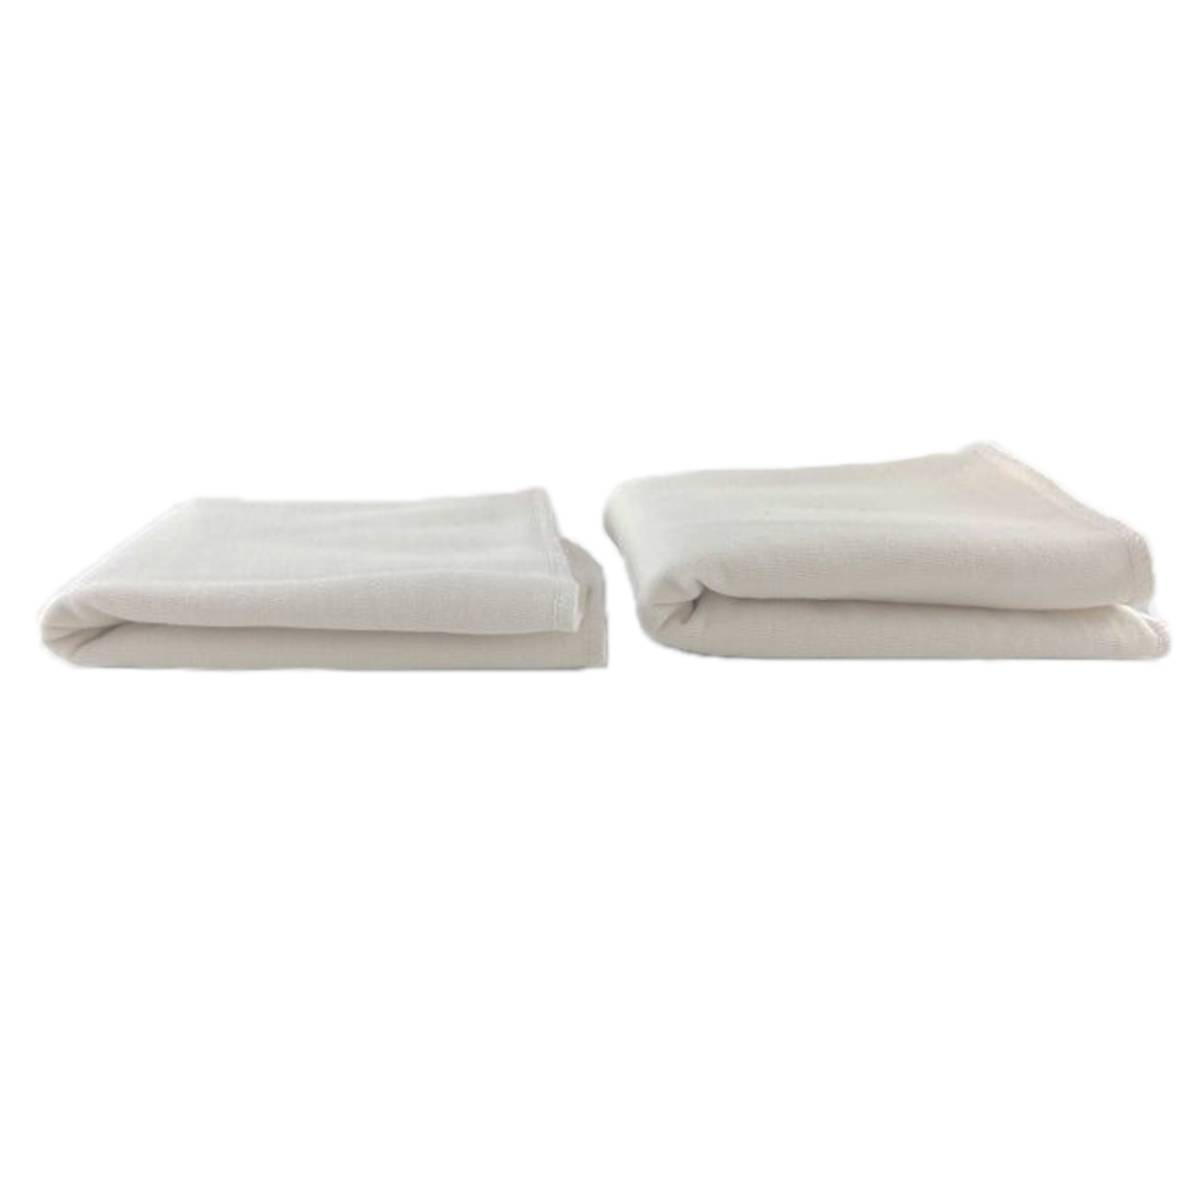 Hamac Lot de 2 Absorbants Lavables en Coton Bio - Taille 1